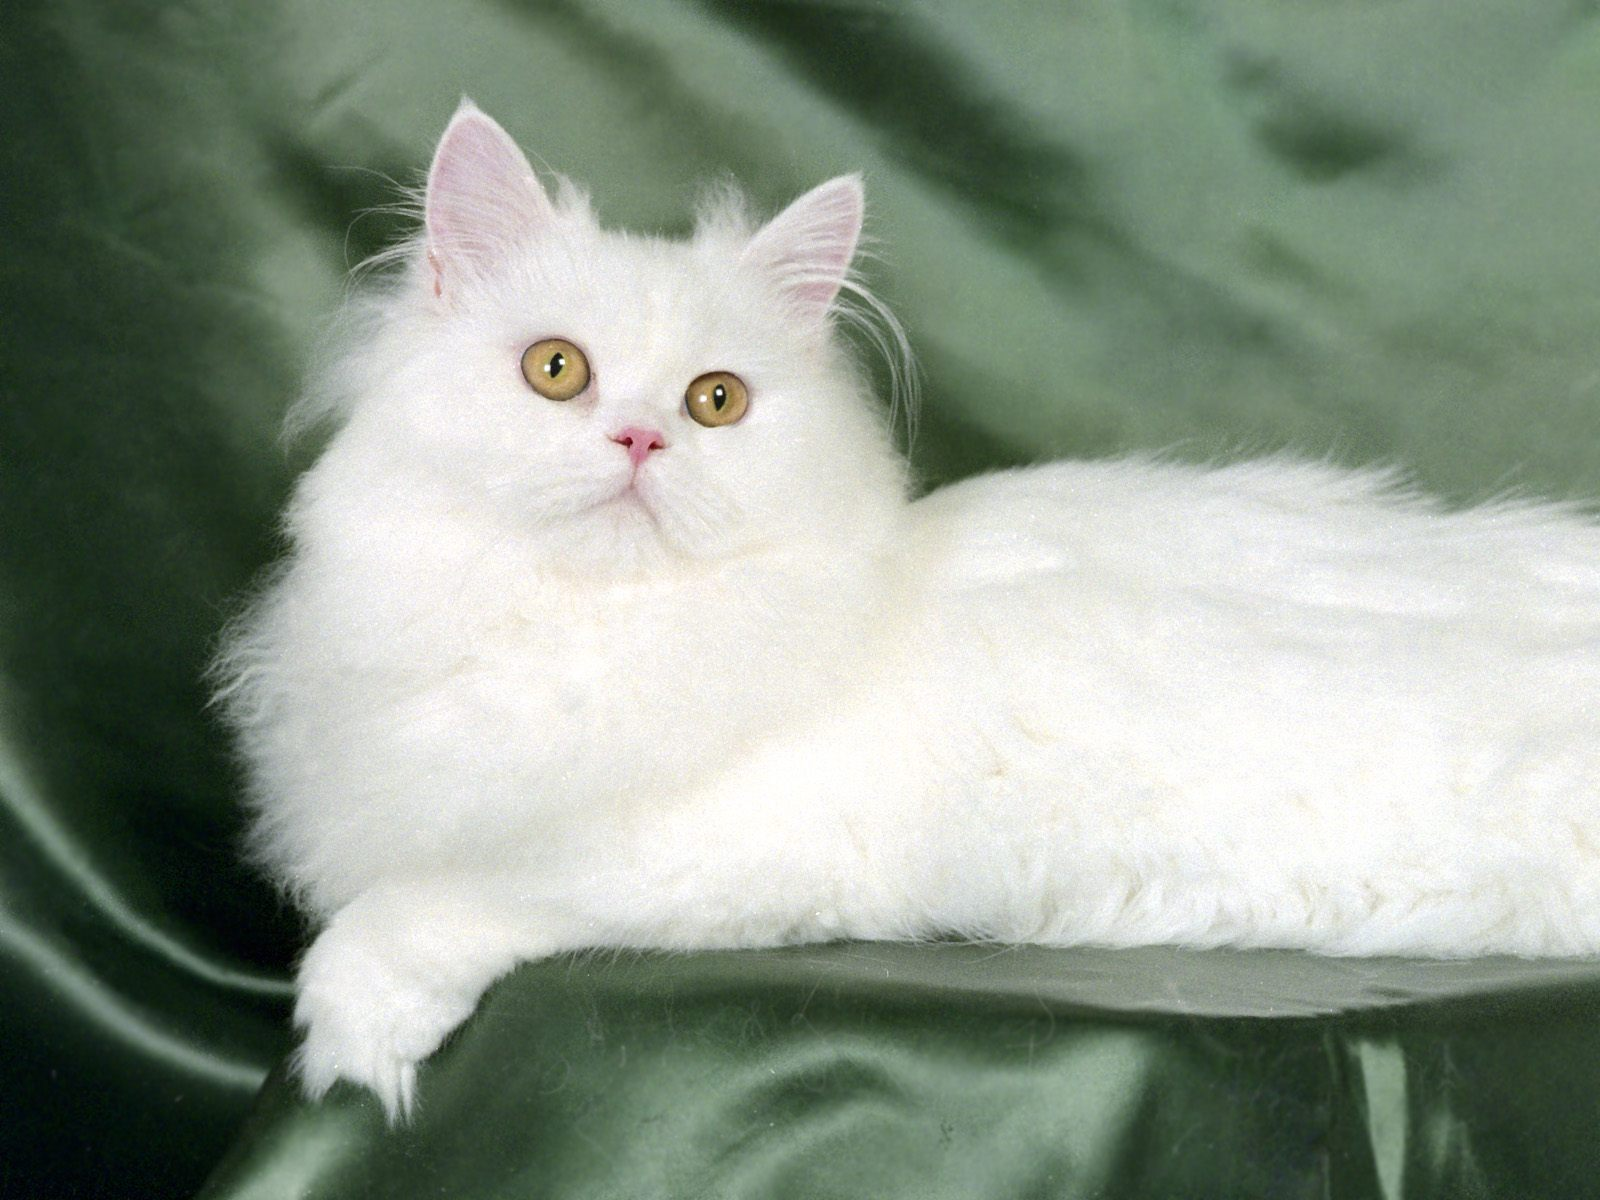 White Persian Cat Sitting On Green Couch